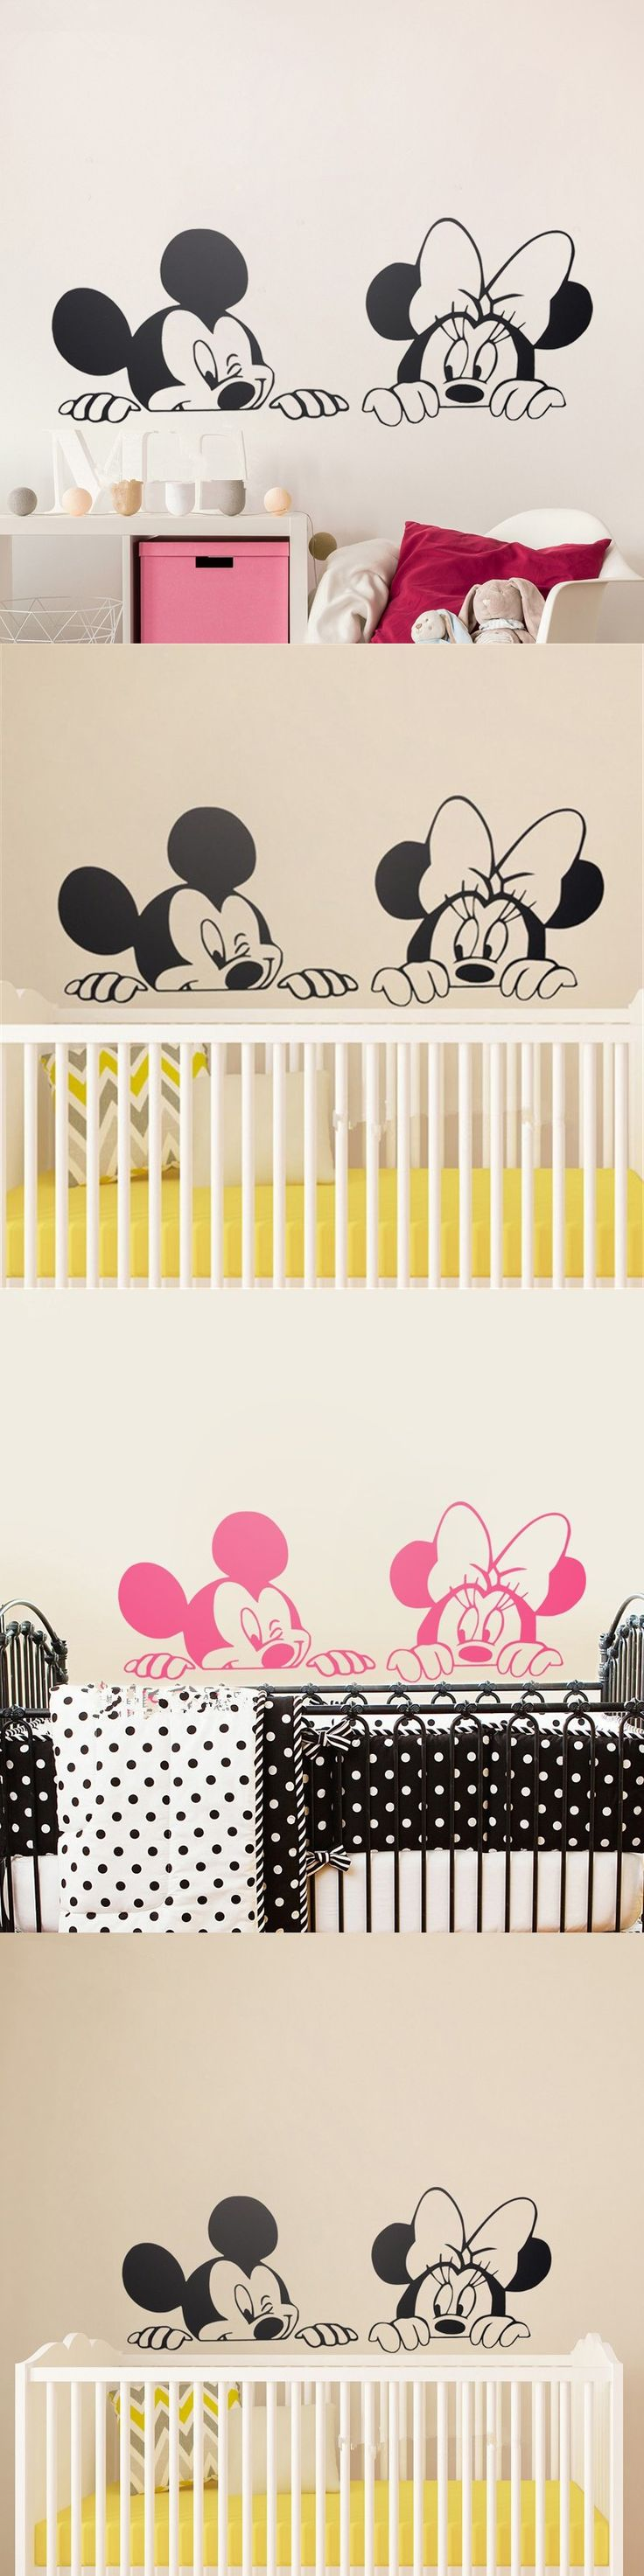 best 25 vinyl wall stickers ideas on pinterest vinyl wall art cartoon mickey minnie mouse cute animal vinyl wall stickers mural wallpaper baby room decor nursery wall decal home decor